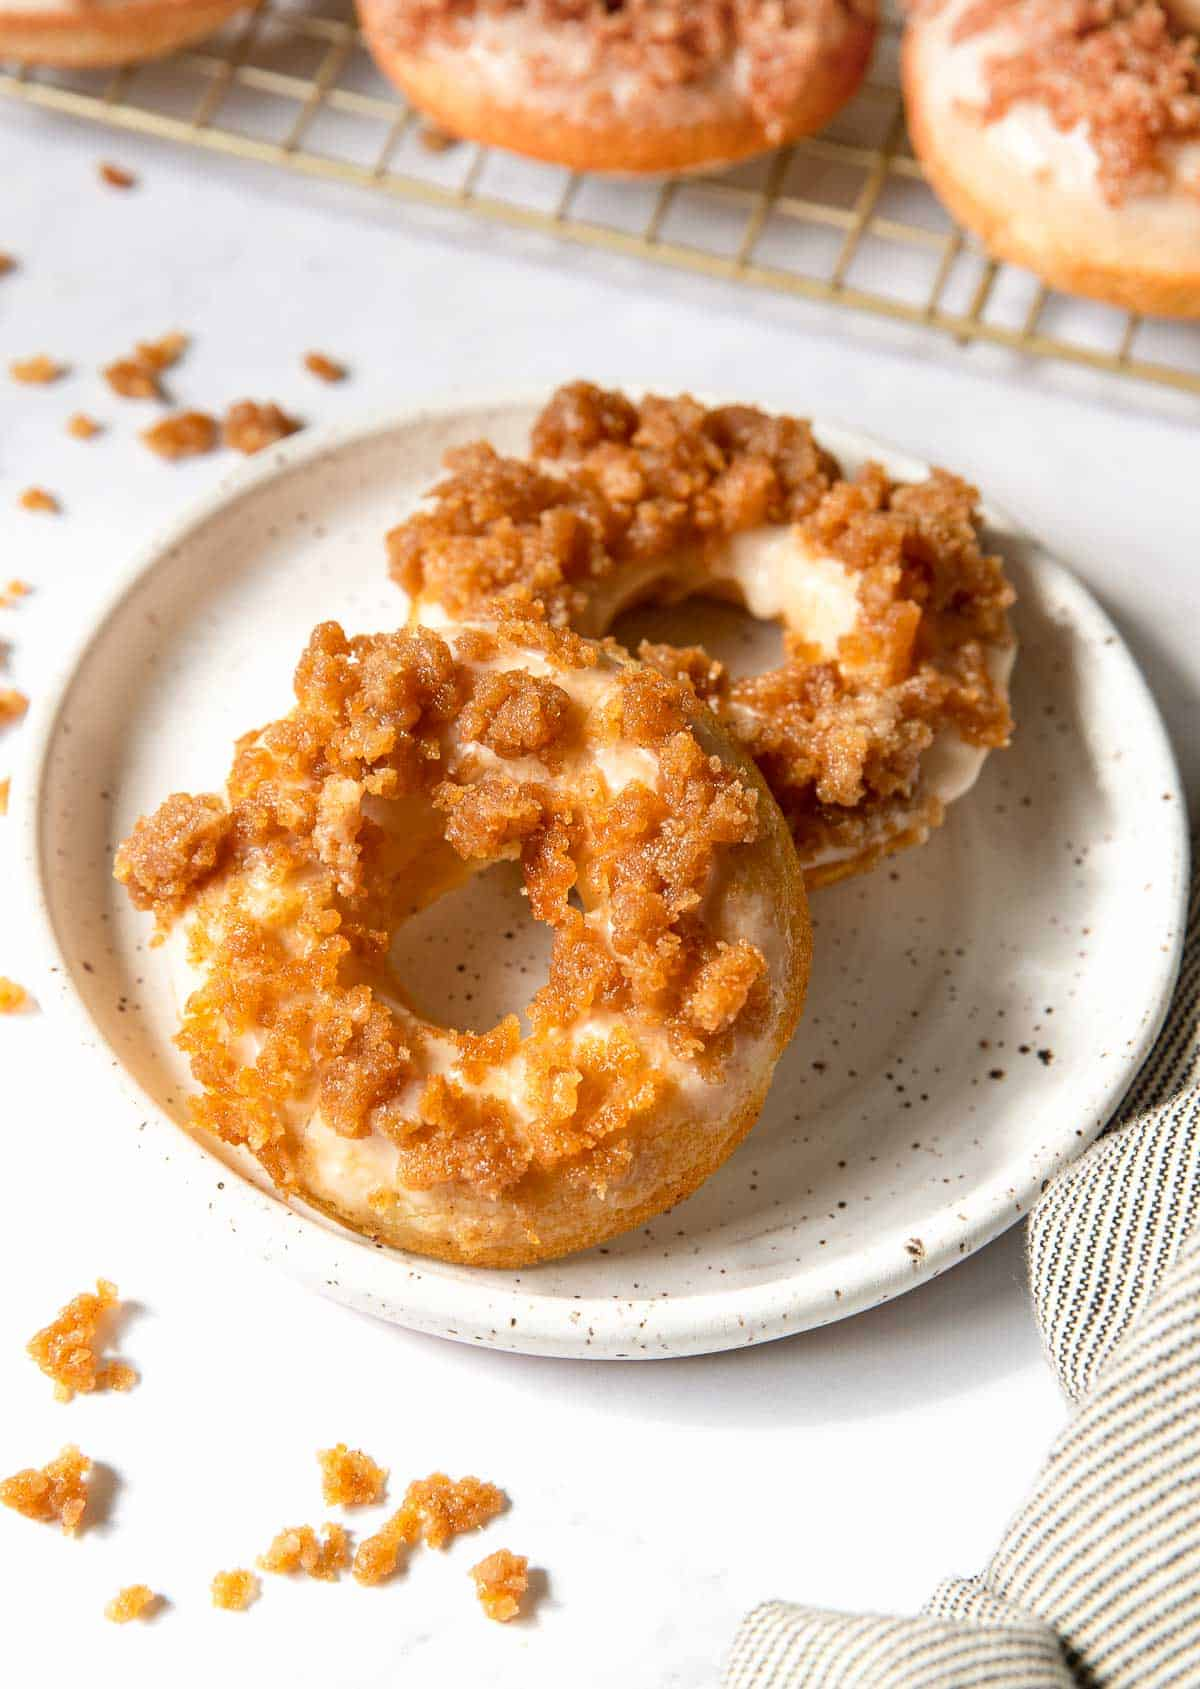 Two streusel topped donuts on a plate.